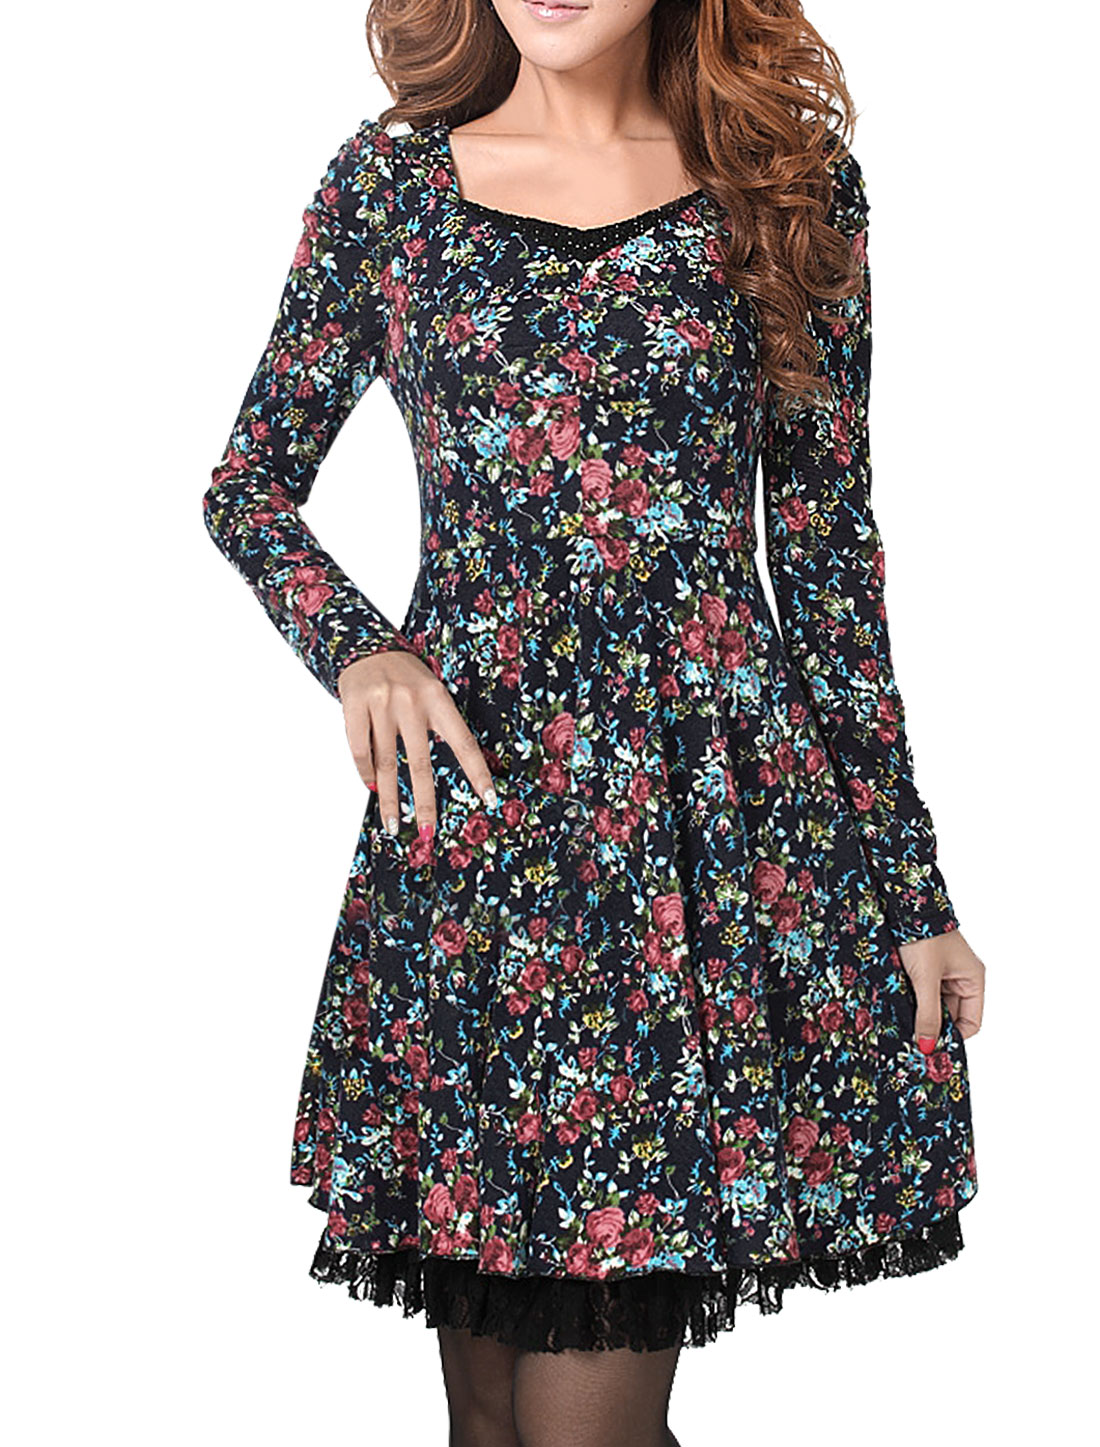 Lady Long Puff Sleeve Floral Prints Zip Up Side Dress Pink Navy Blue M